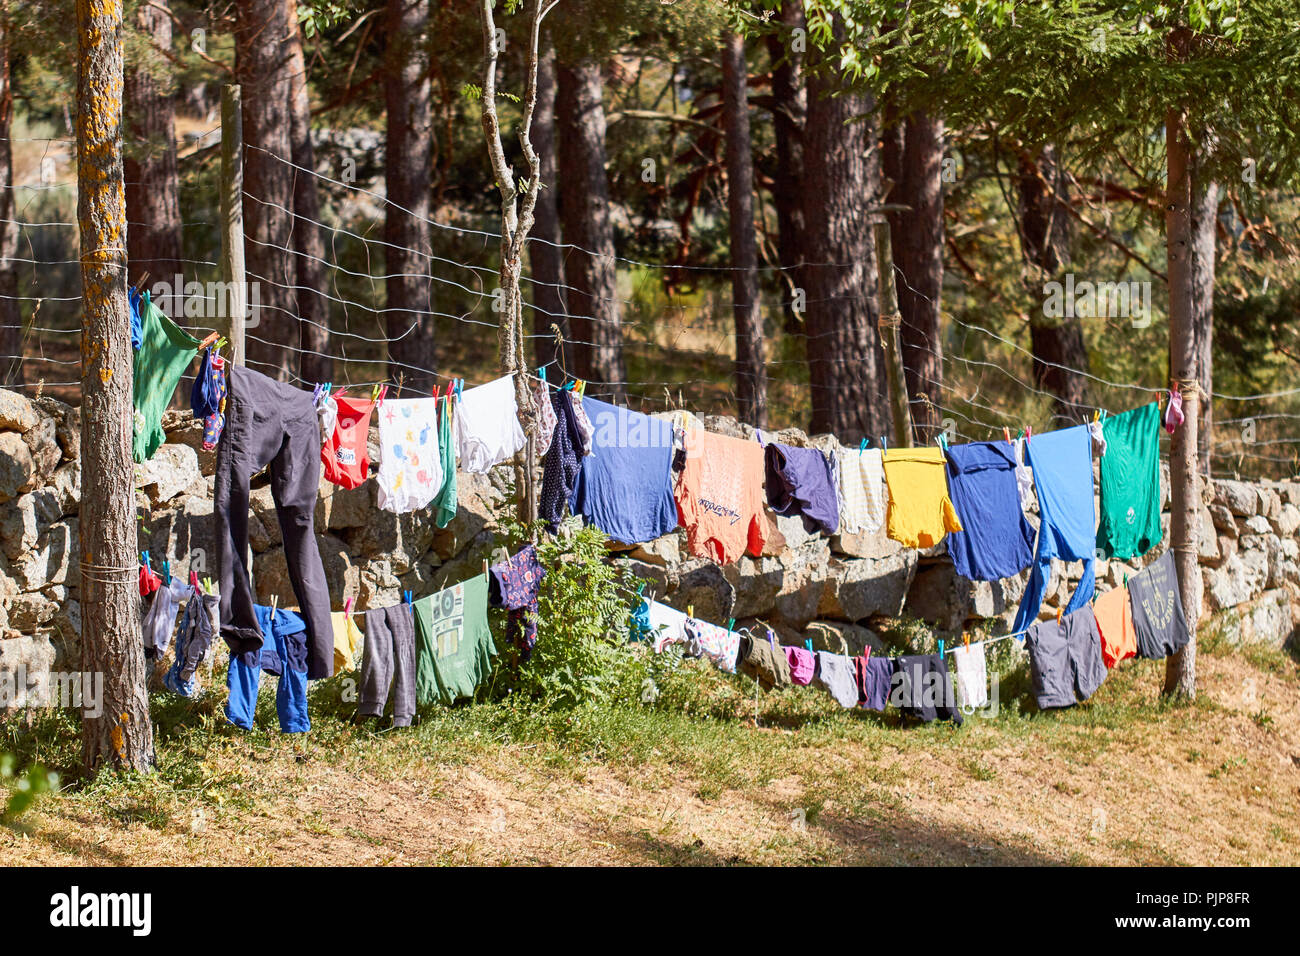 clothes line in a campsite - Stock Image